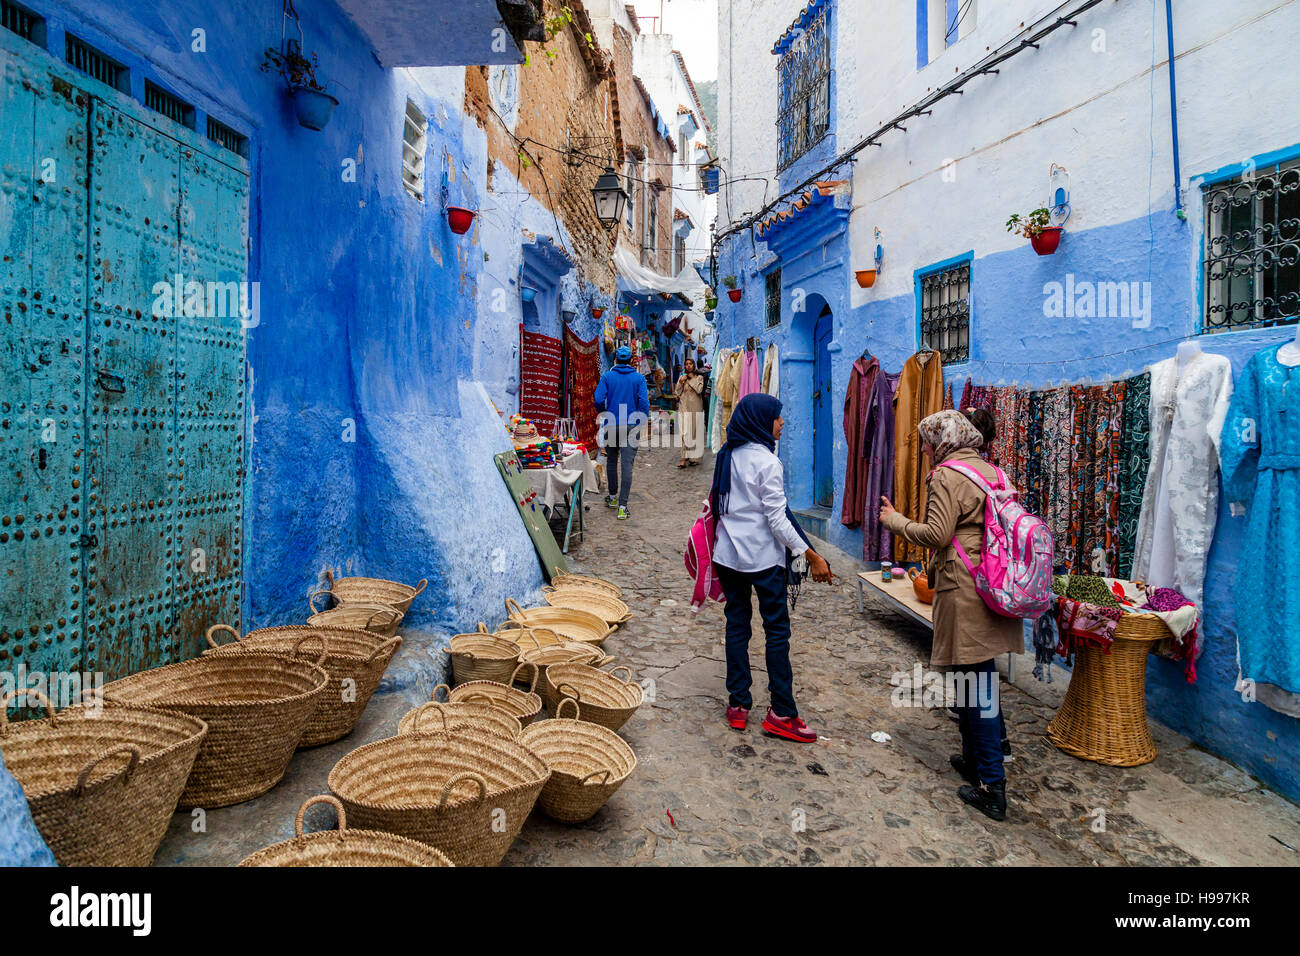 Street Life In The Medina, Chefchaouen, Morocco - Stock Image